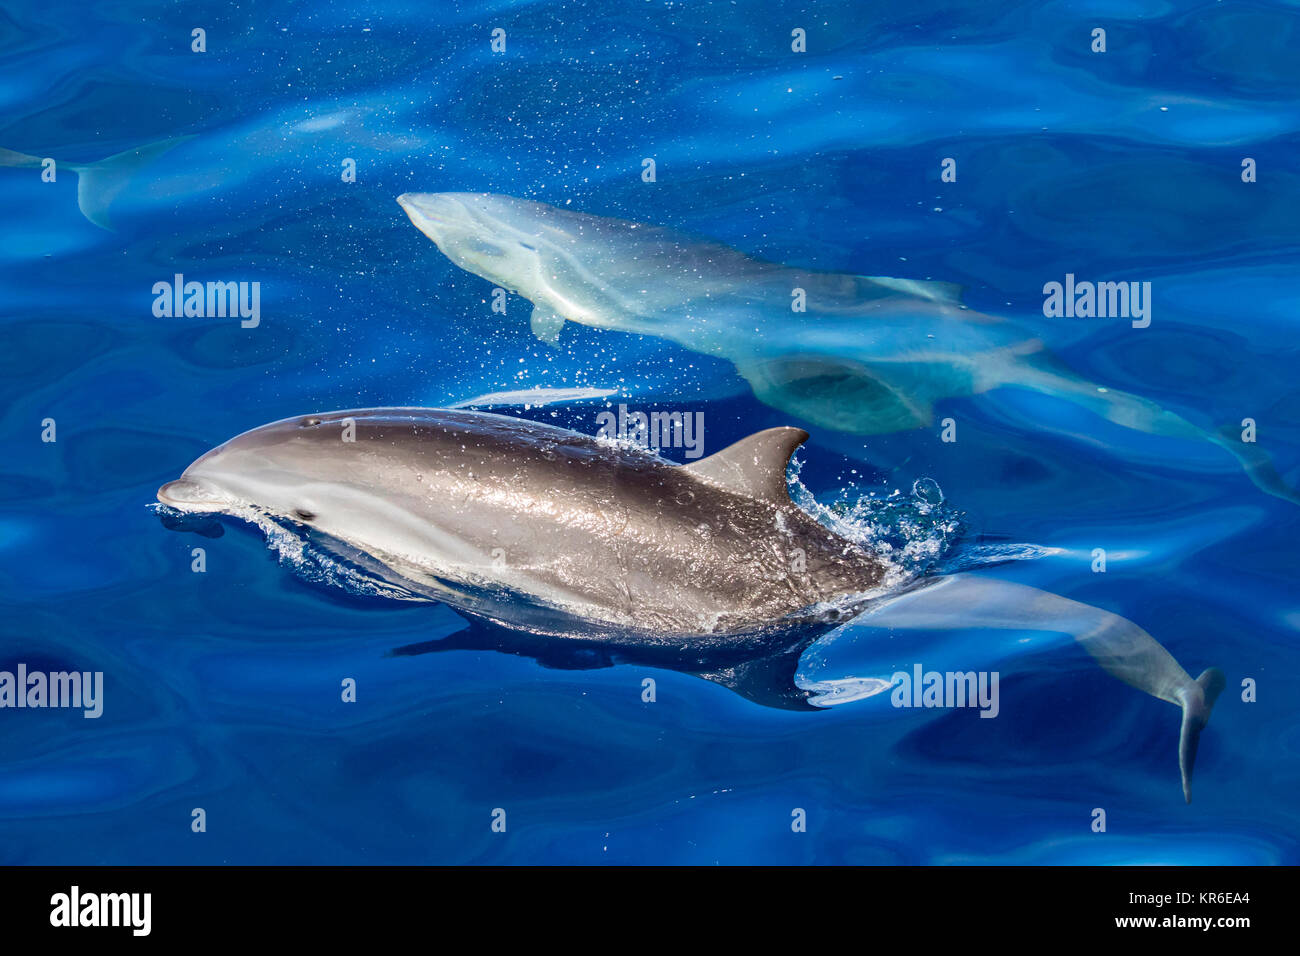 Fraser's dolphin (Lagenodelphis hosei) or the Sarawak dolphin getting close to the boat in large group - Stock Image